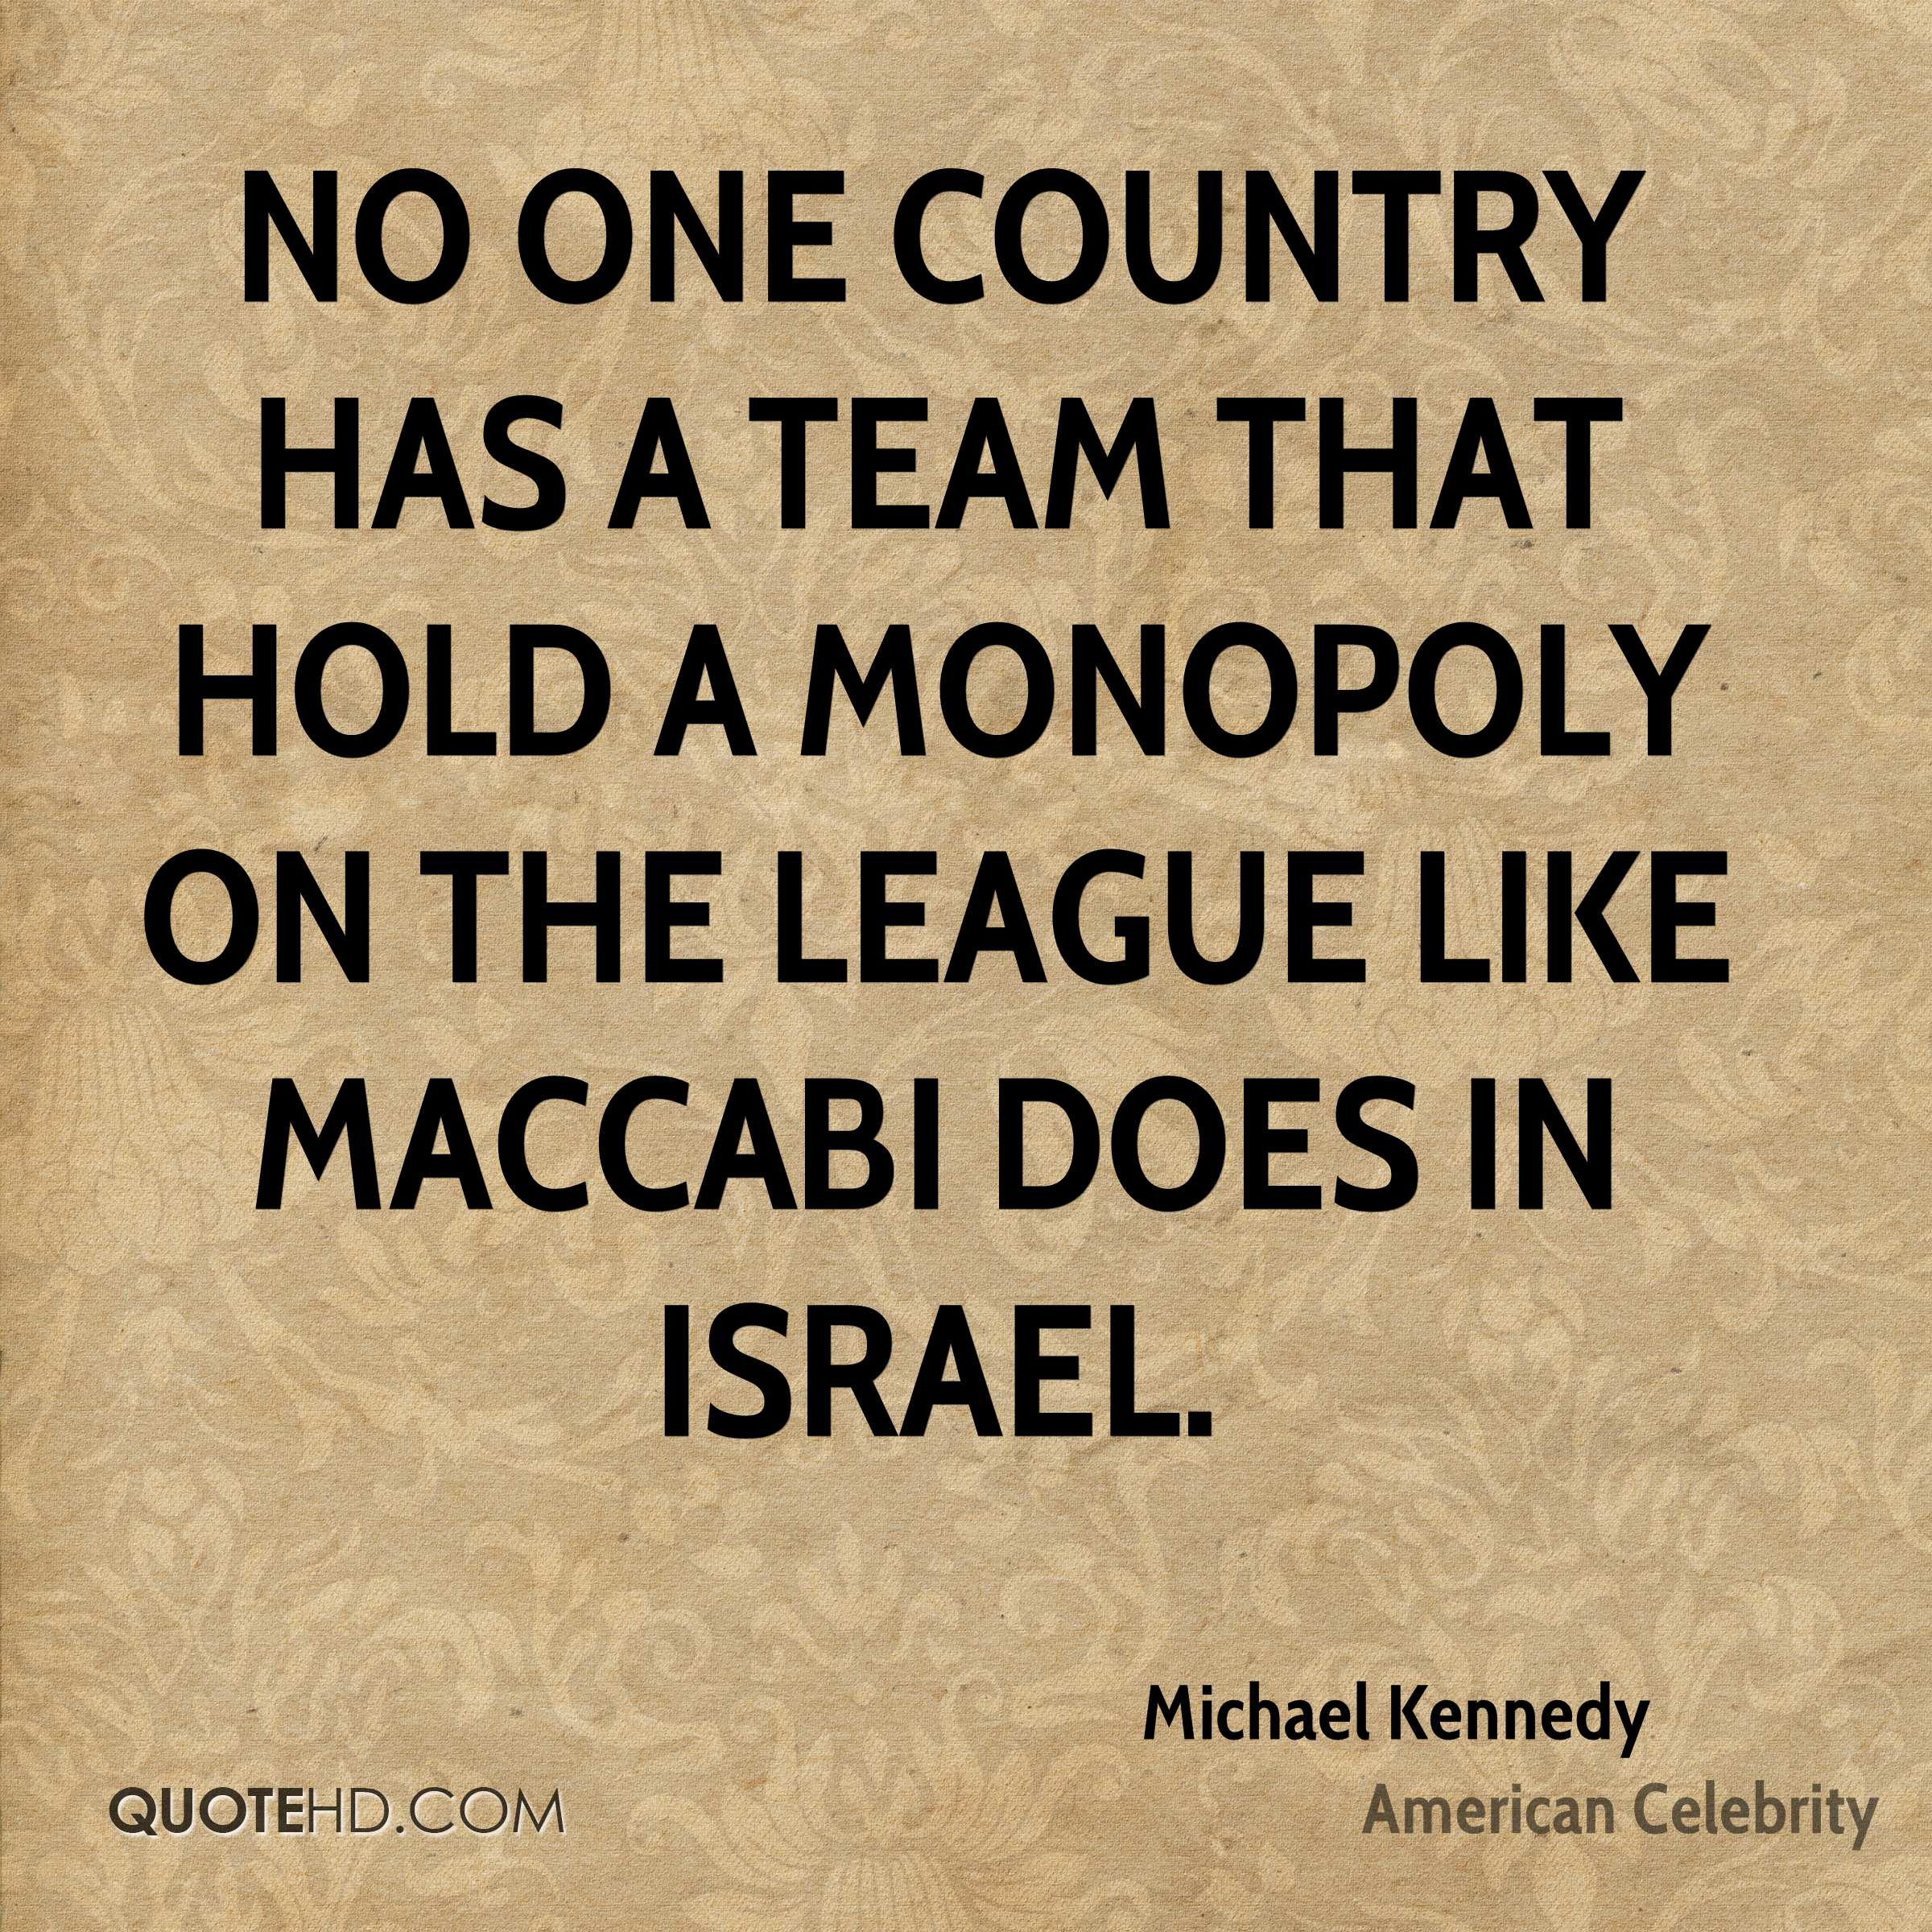 No one country has a team that hold a monopoly on the league like Maccabi does in Israel.